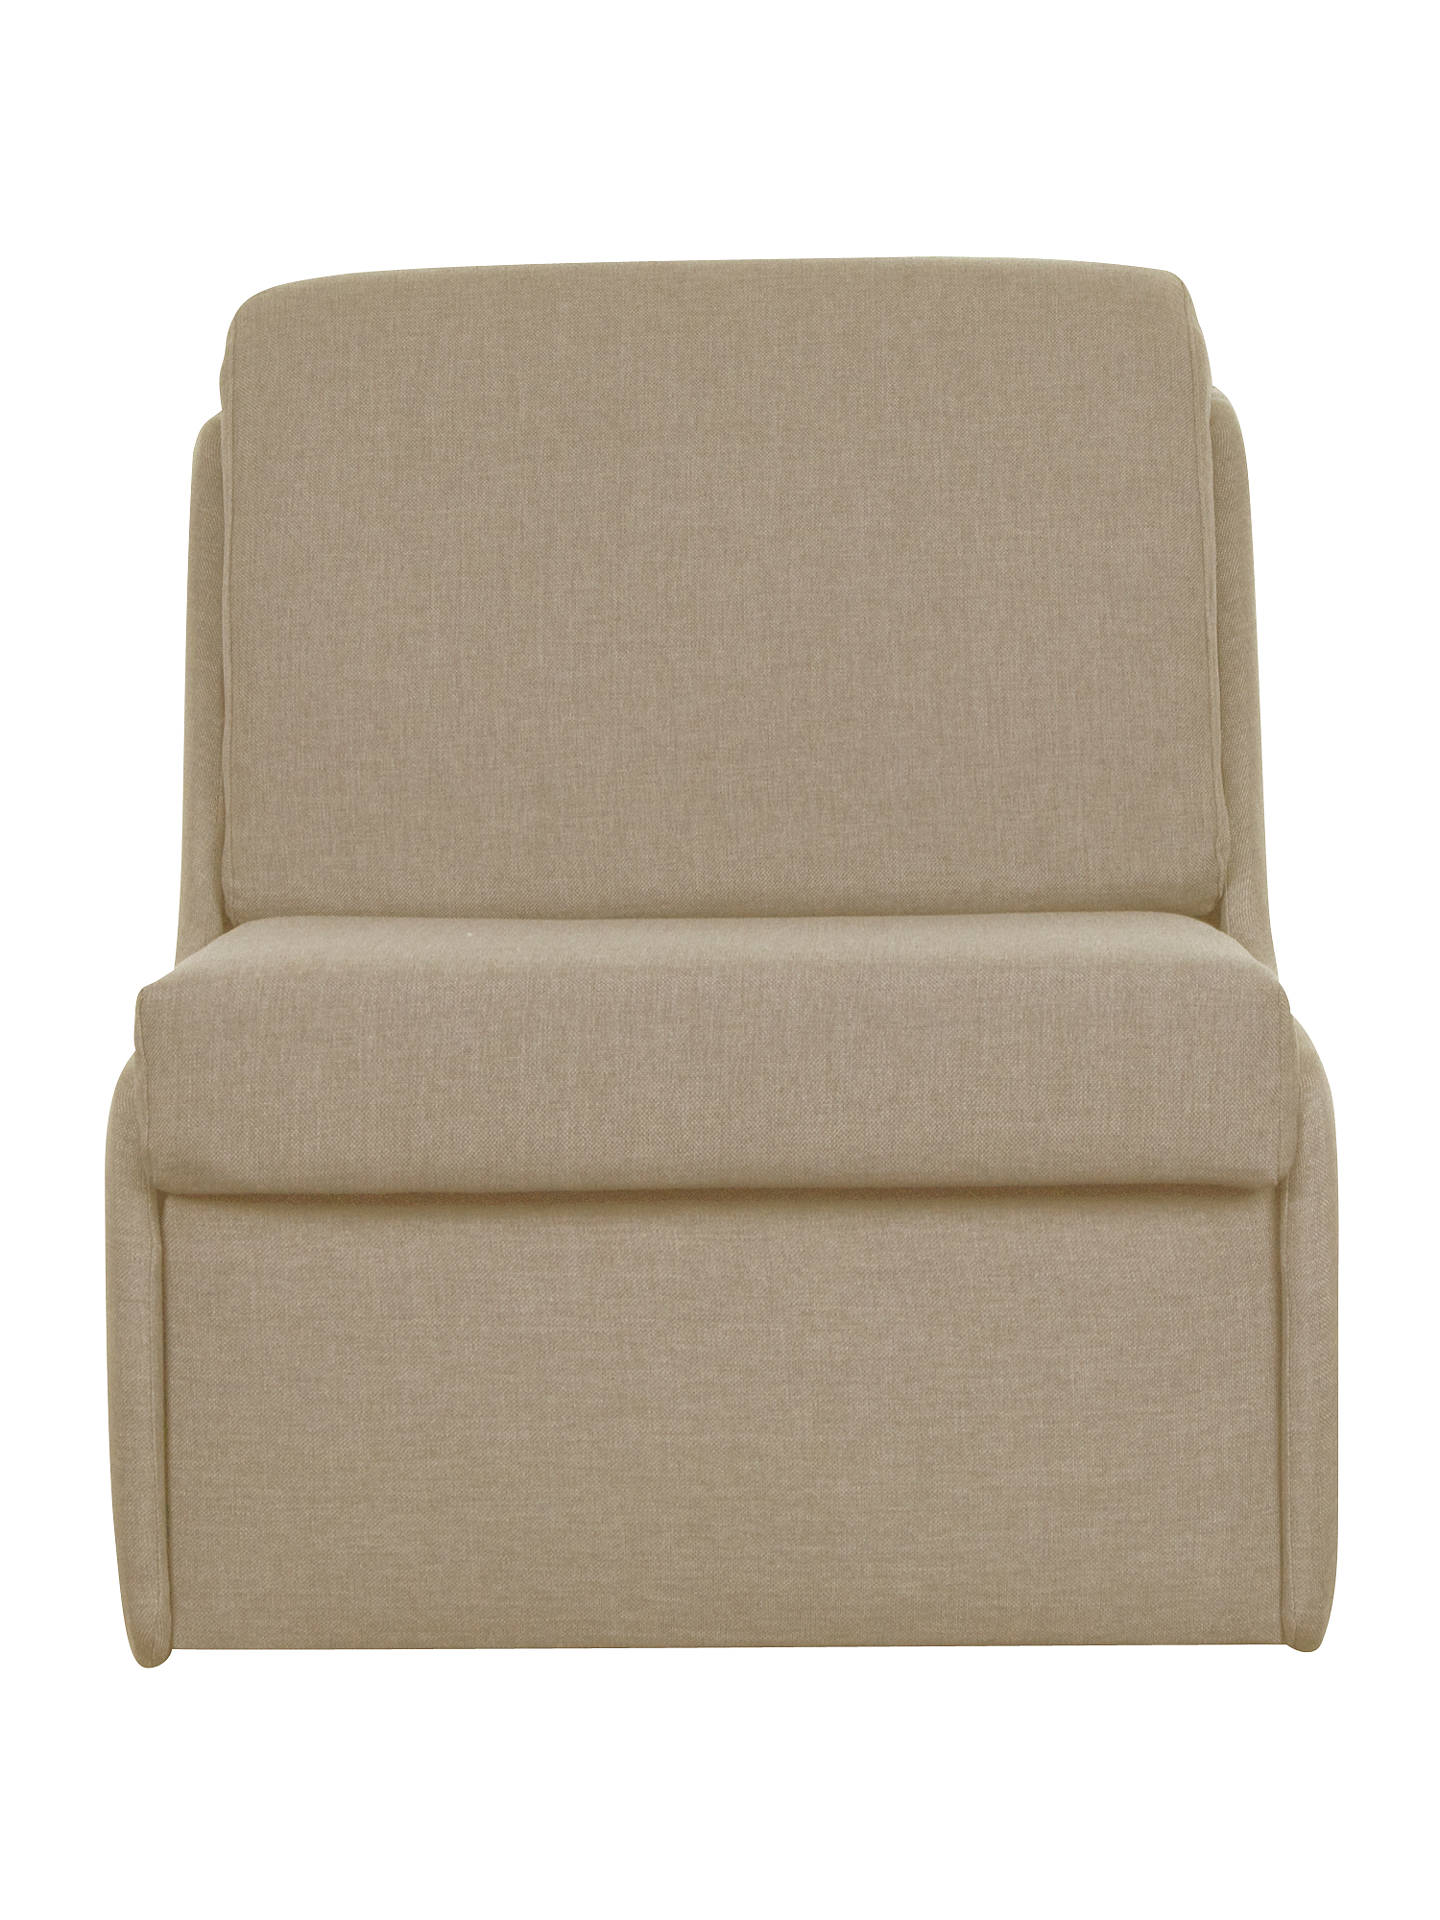 Marvelous John Lewis Jessie Chair Bed Oslo French Grey At John Lewis Cjindustries Chair Design For Home Cjindustriesco